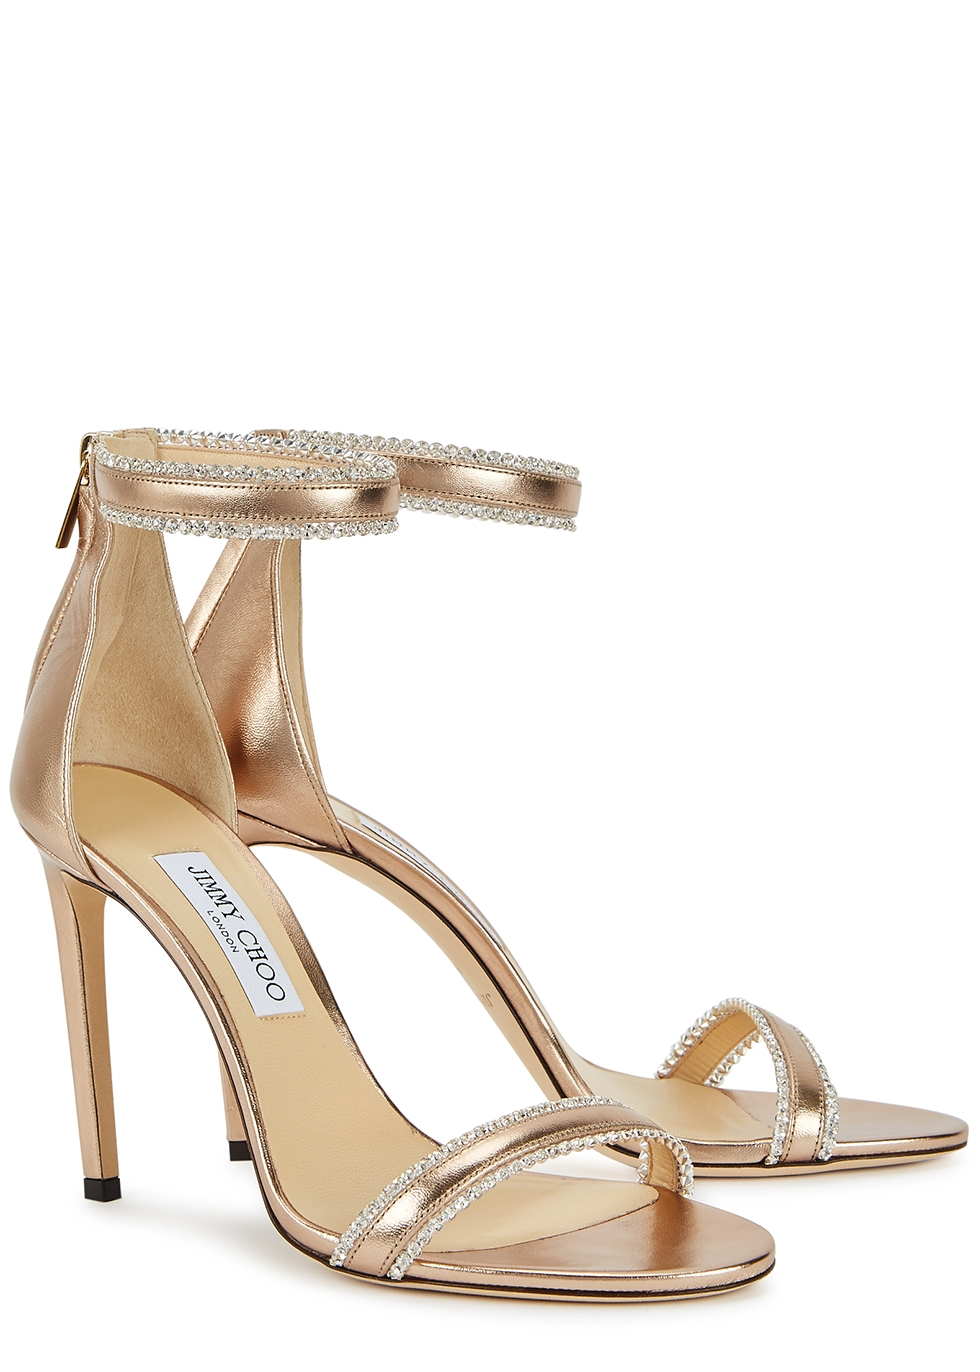 JIMMY CHOO Dochas 100 gold leather sandals